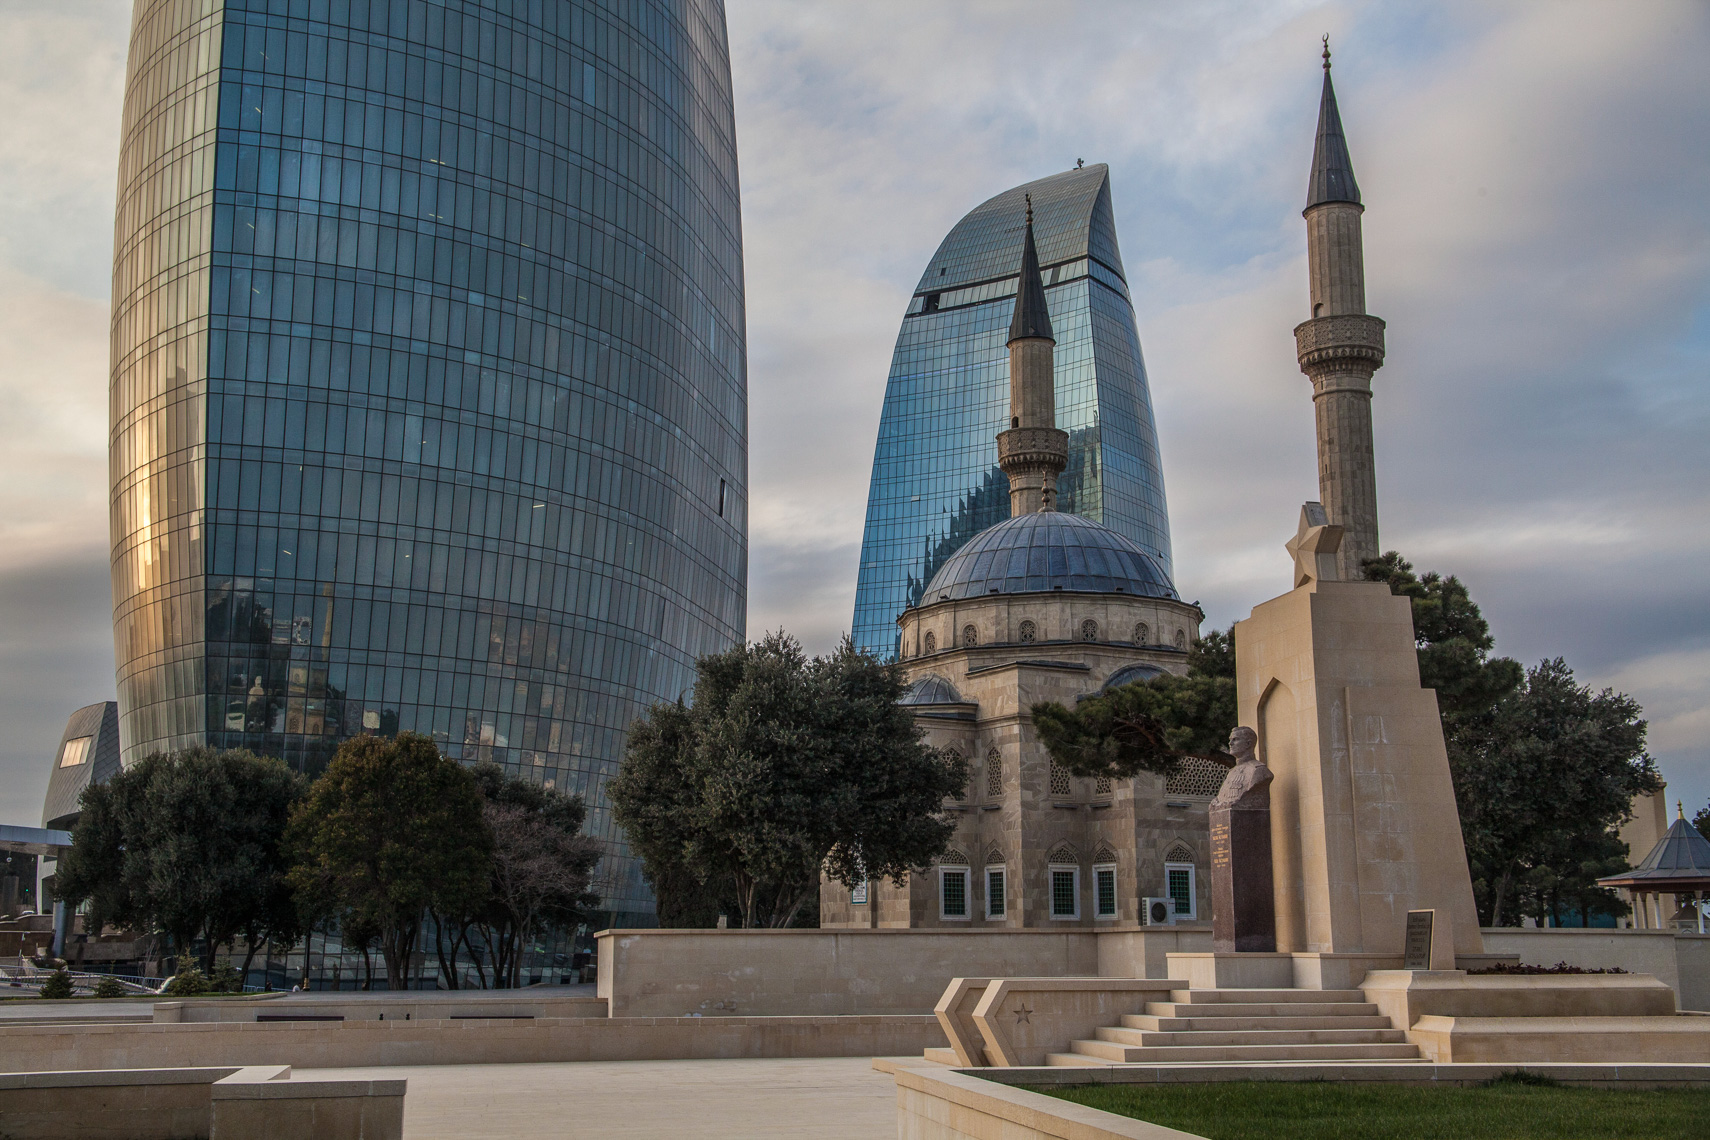 1201Baku Azerbaijan, the Flame Towers, mosque